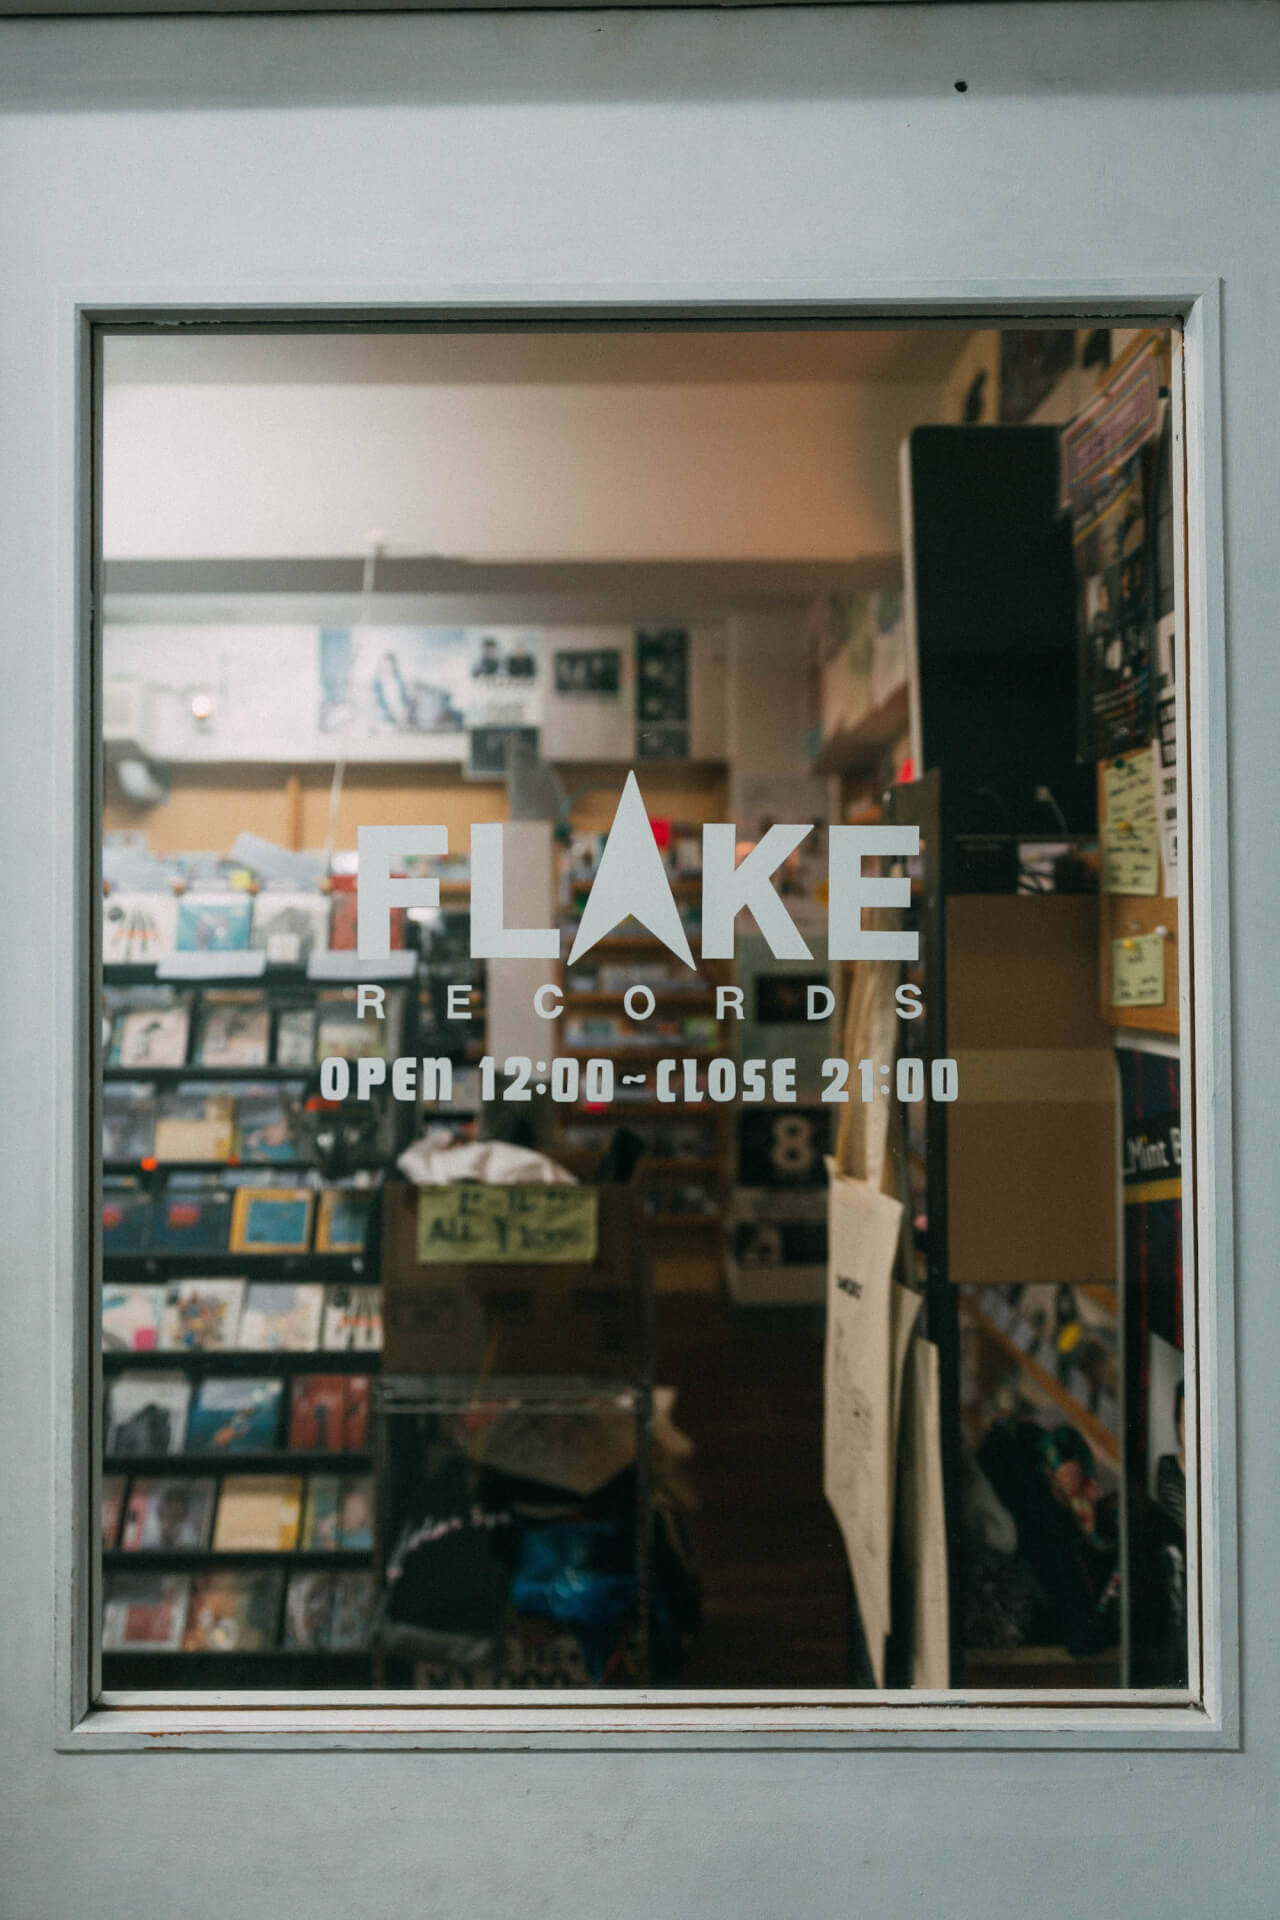 Get To Know Vol.1 FLAKE RECORDS gettoknow-vol1-flake-records-12